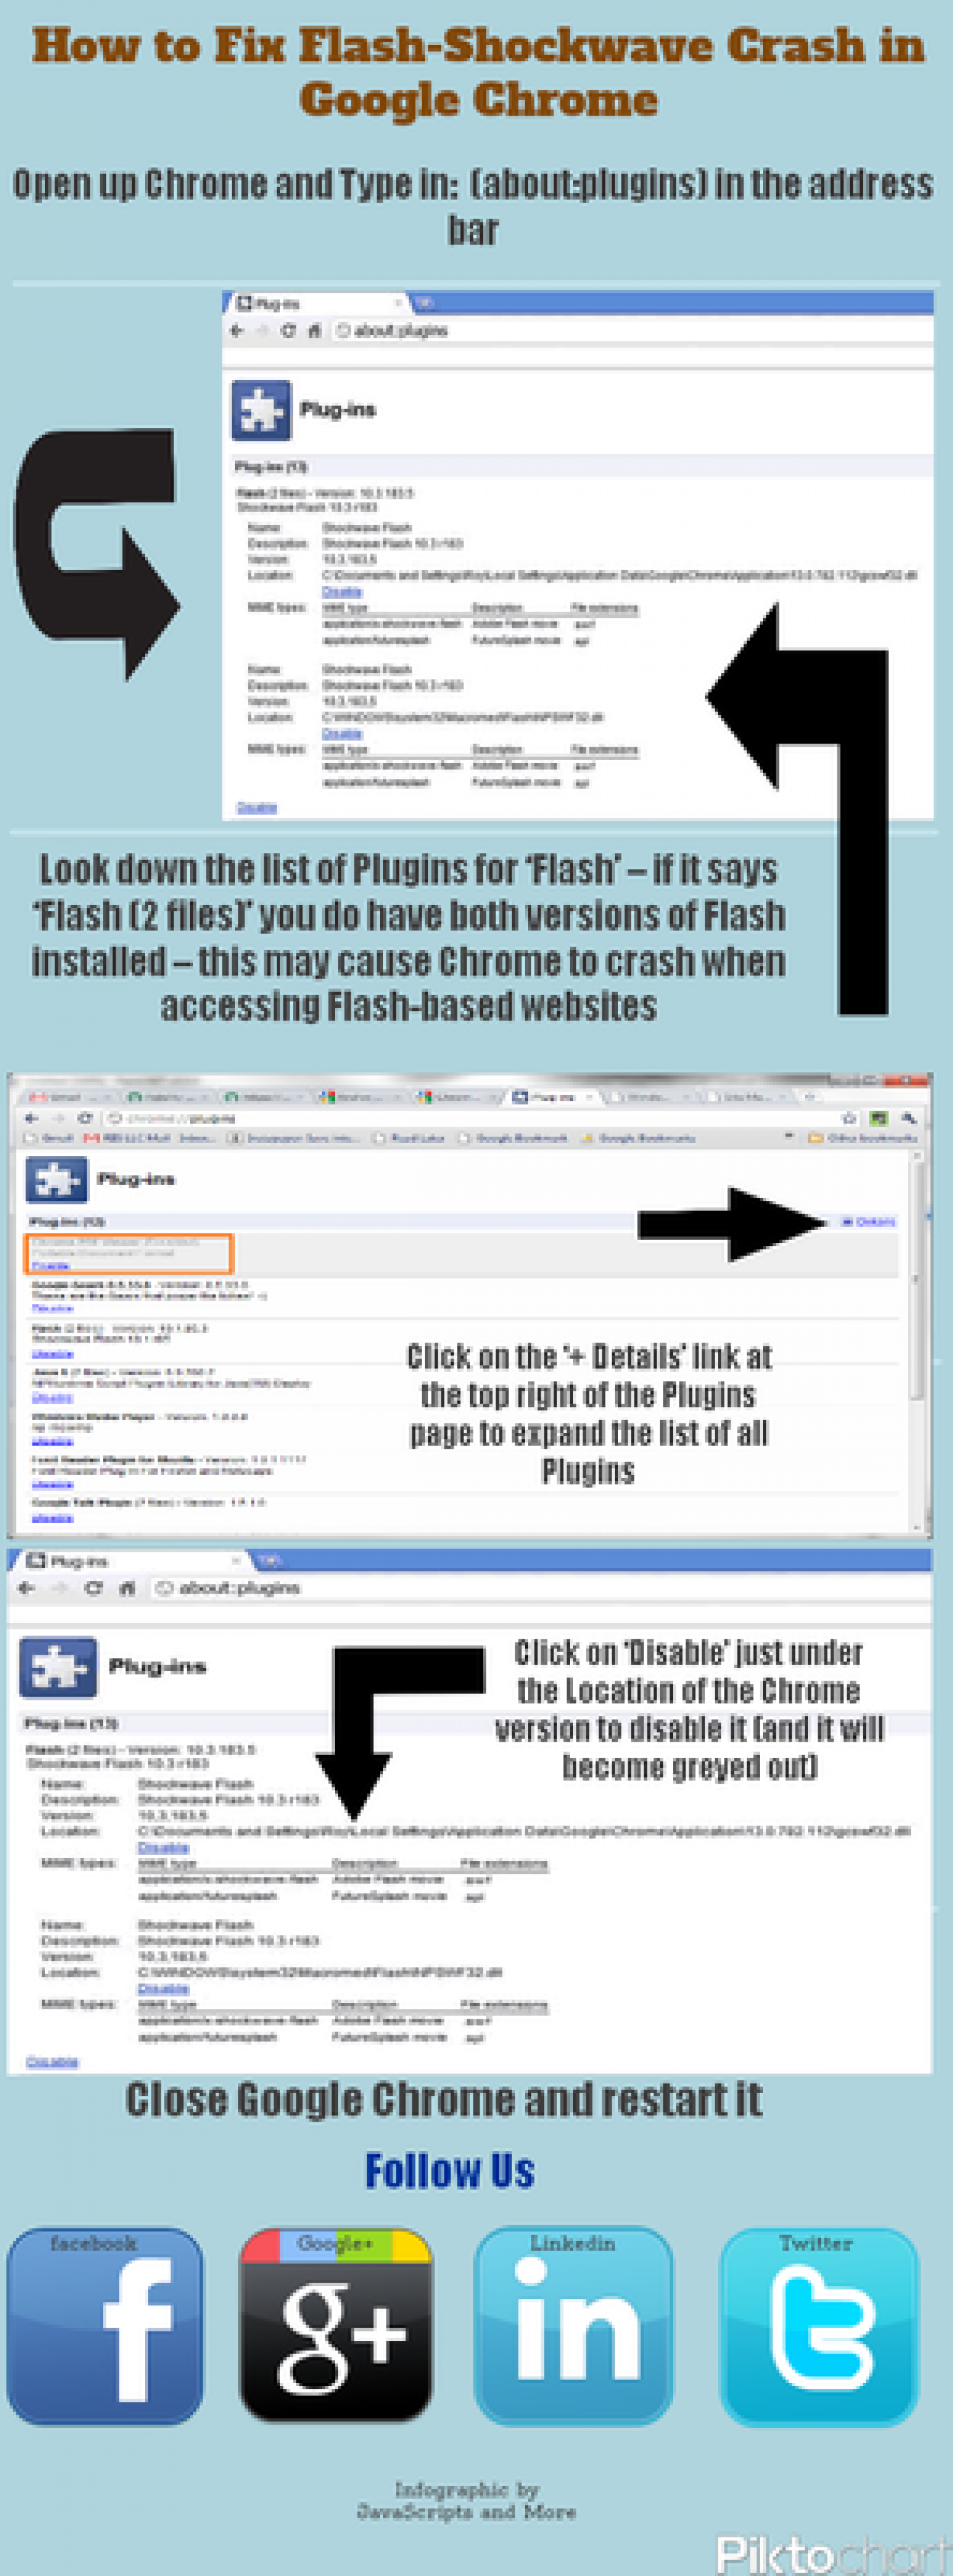 How to fix Shockwave-Flash Crash in Google Chrome Infographic